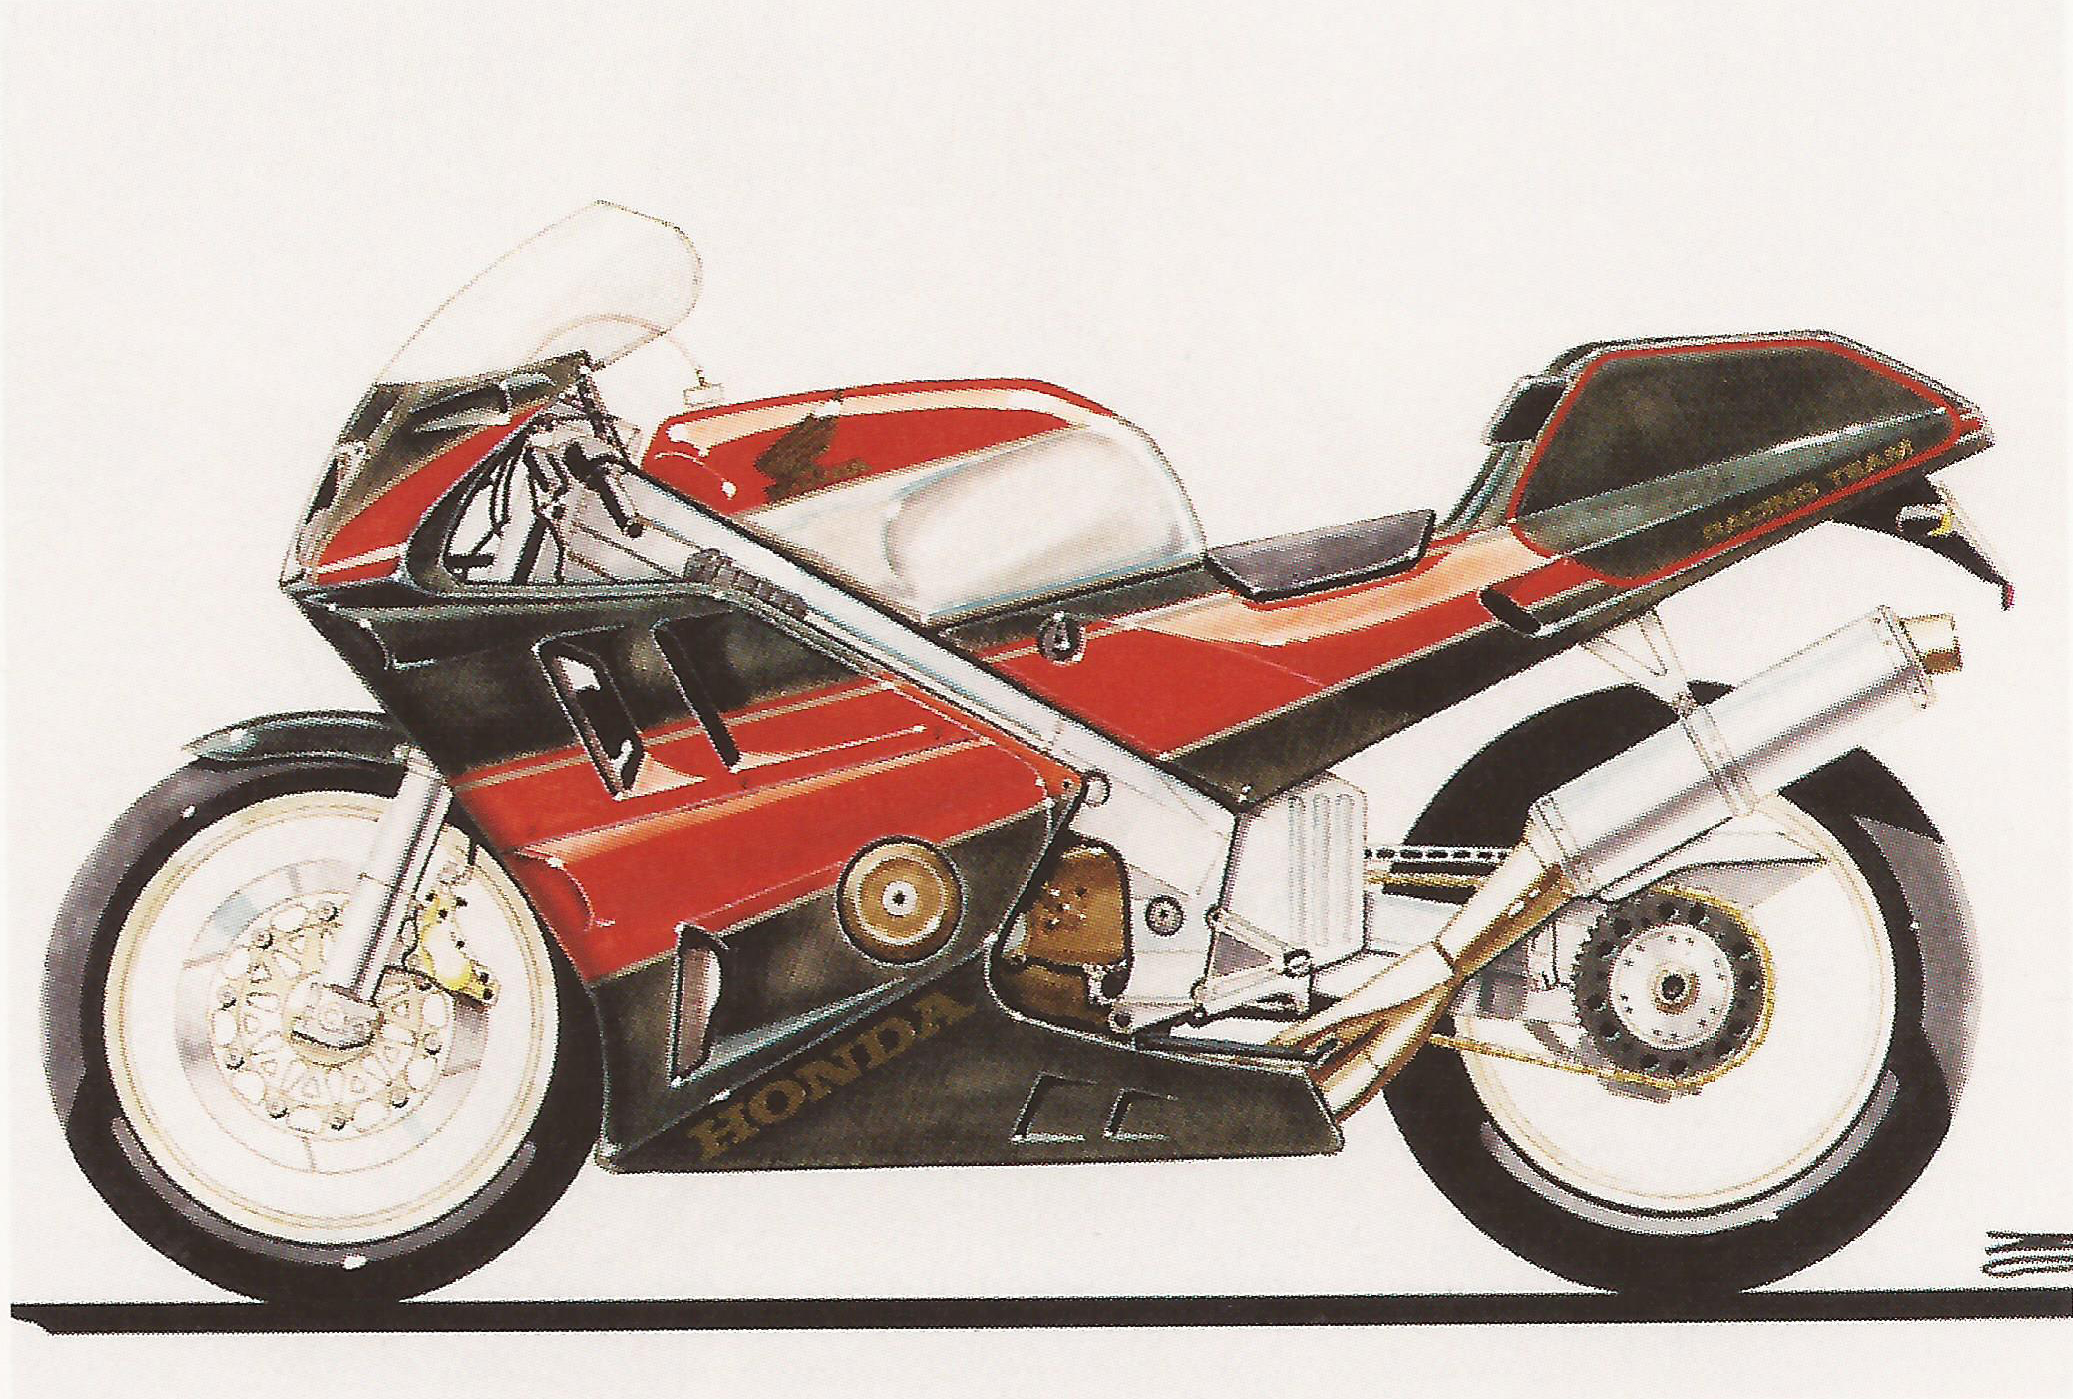 Bmw R1200rt Wiring Schematic Smart Diagrams 1973 Motorcycle Diagram R75 5 With Roof 2010 2006